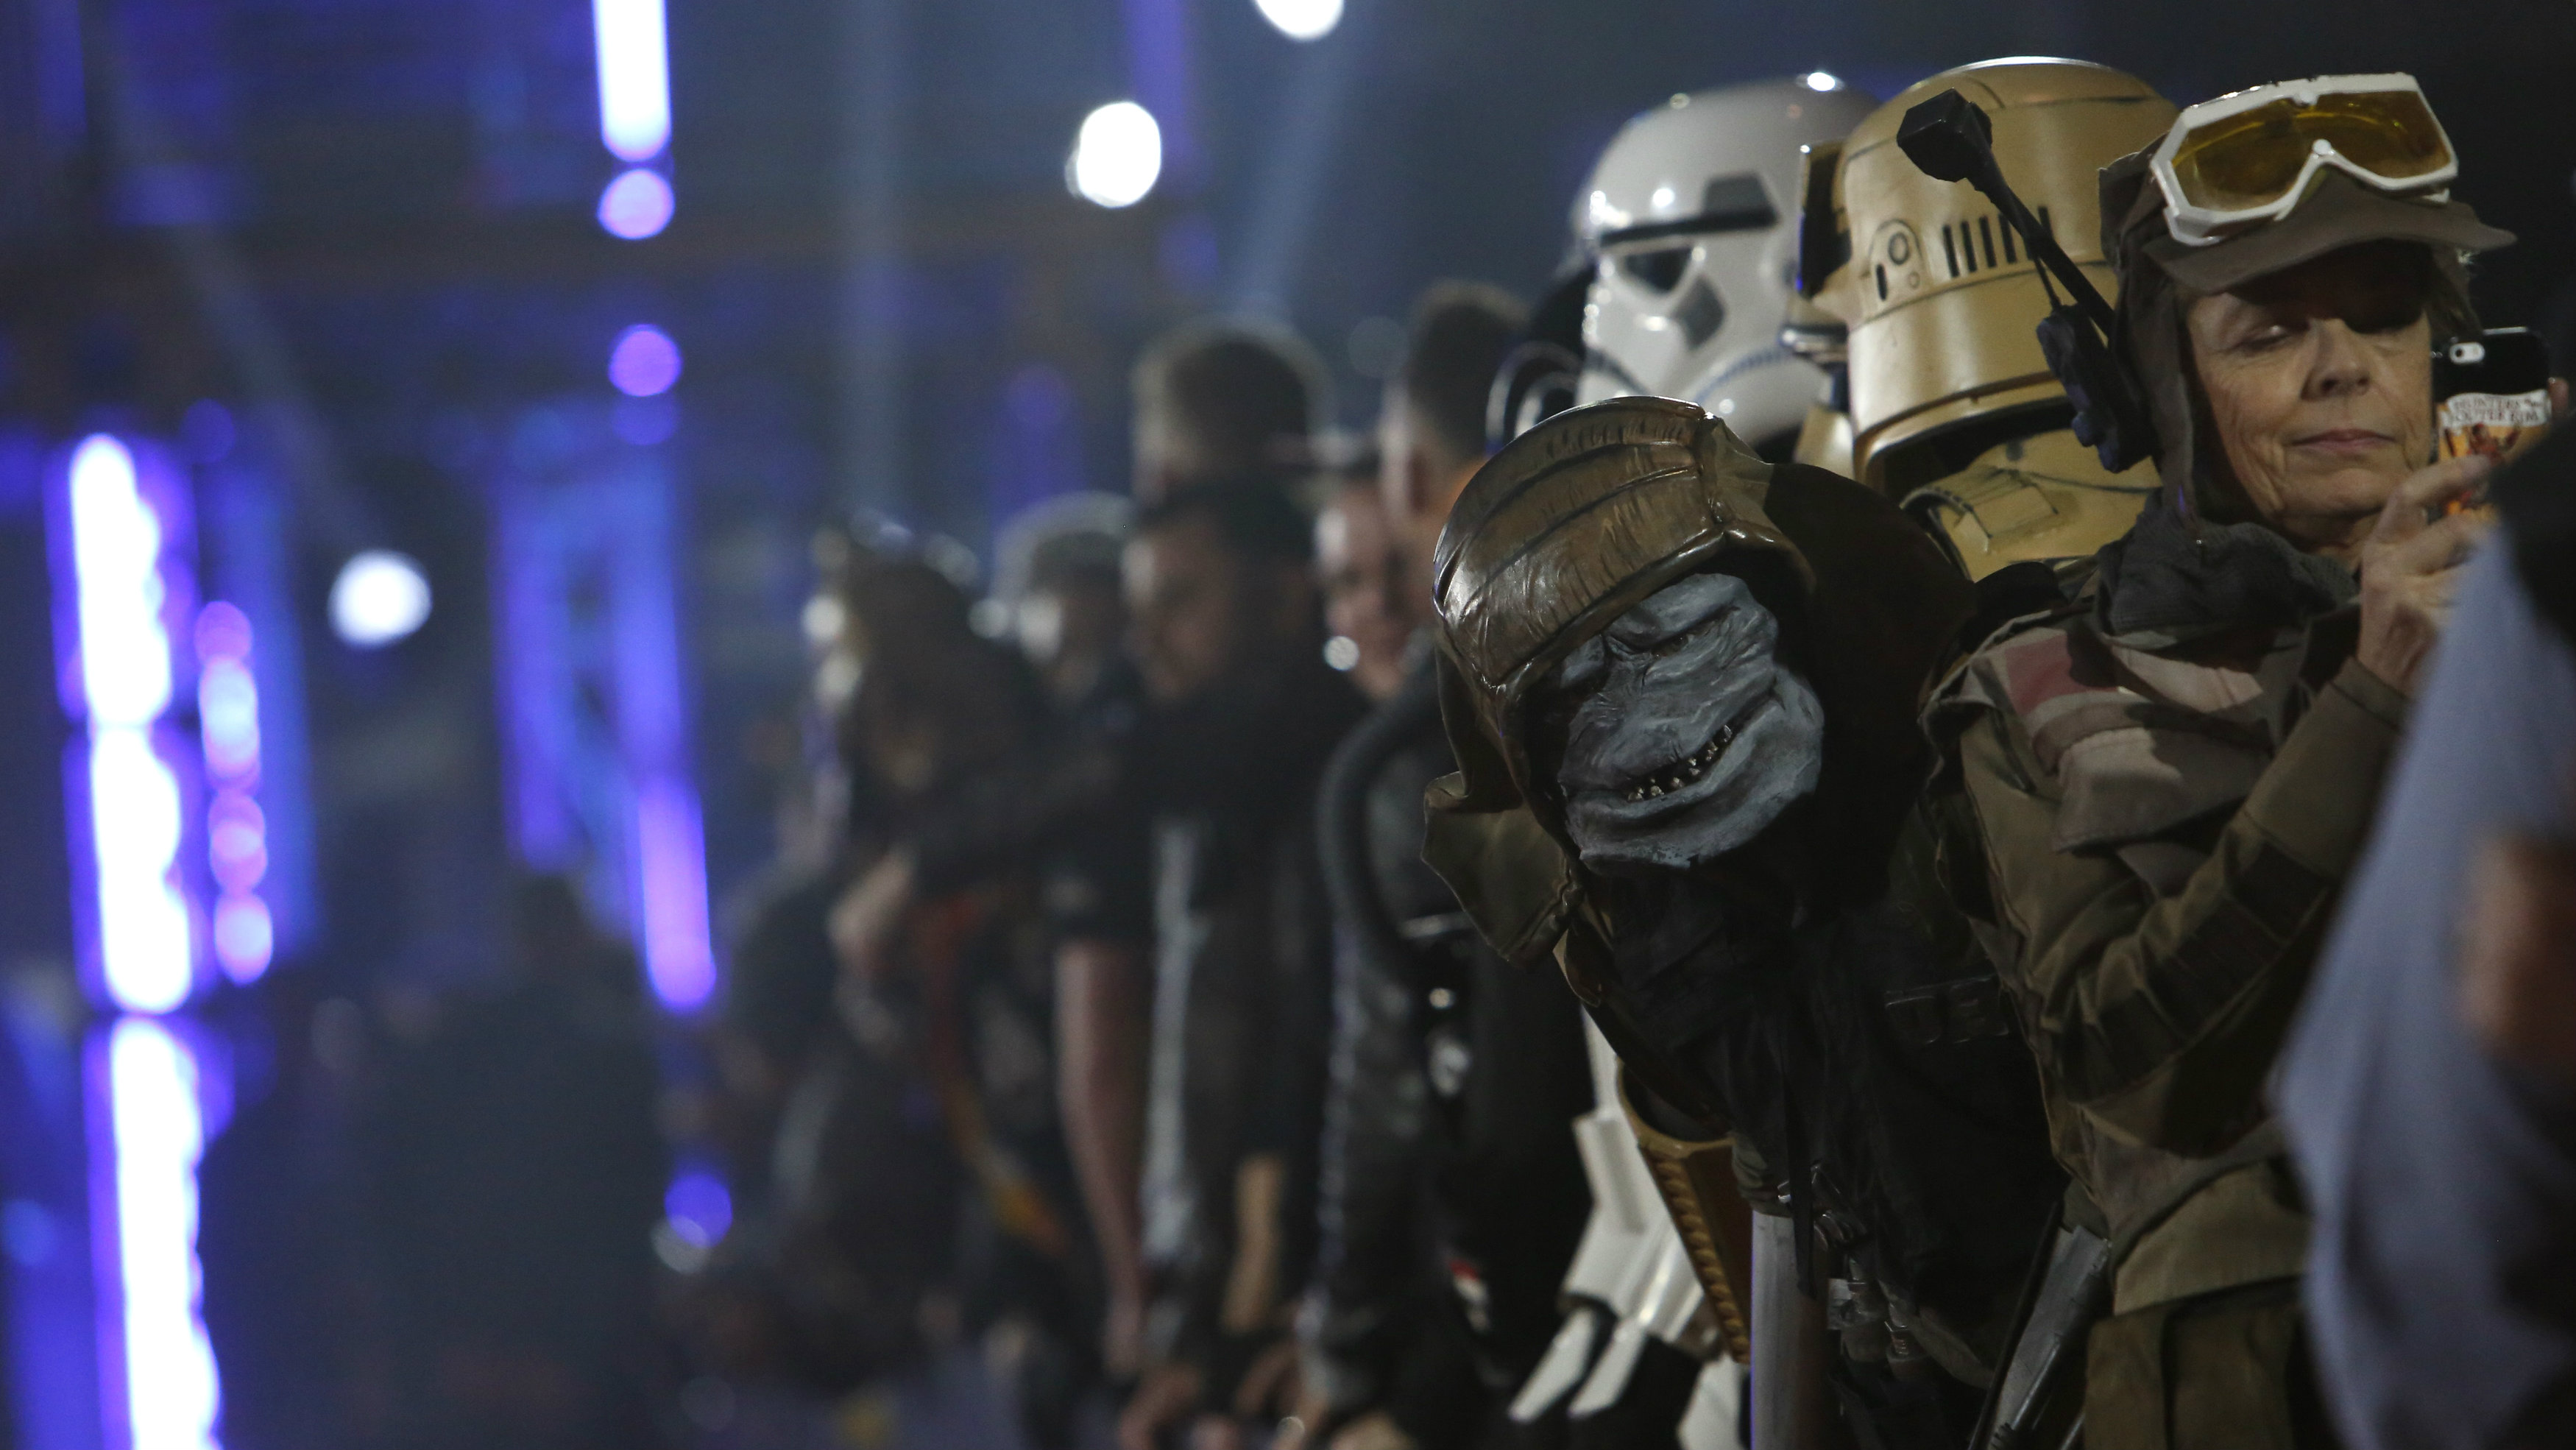 """General view of members of the crowd, some wearing costumes, as they await arrivals on the red carpet at the world premiere of the film """"Rogue One: A Star Wars Story"""" in Hollywood, California, U.S."""